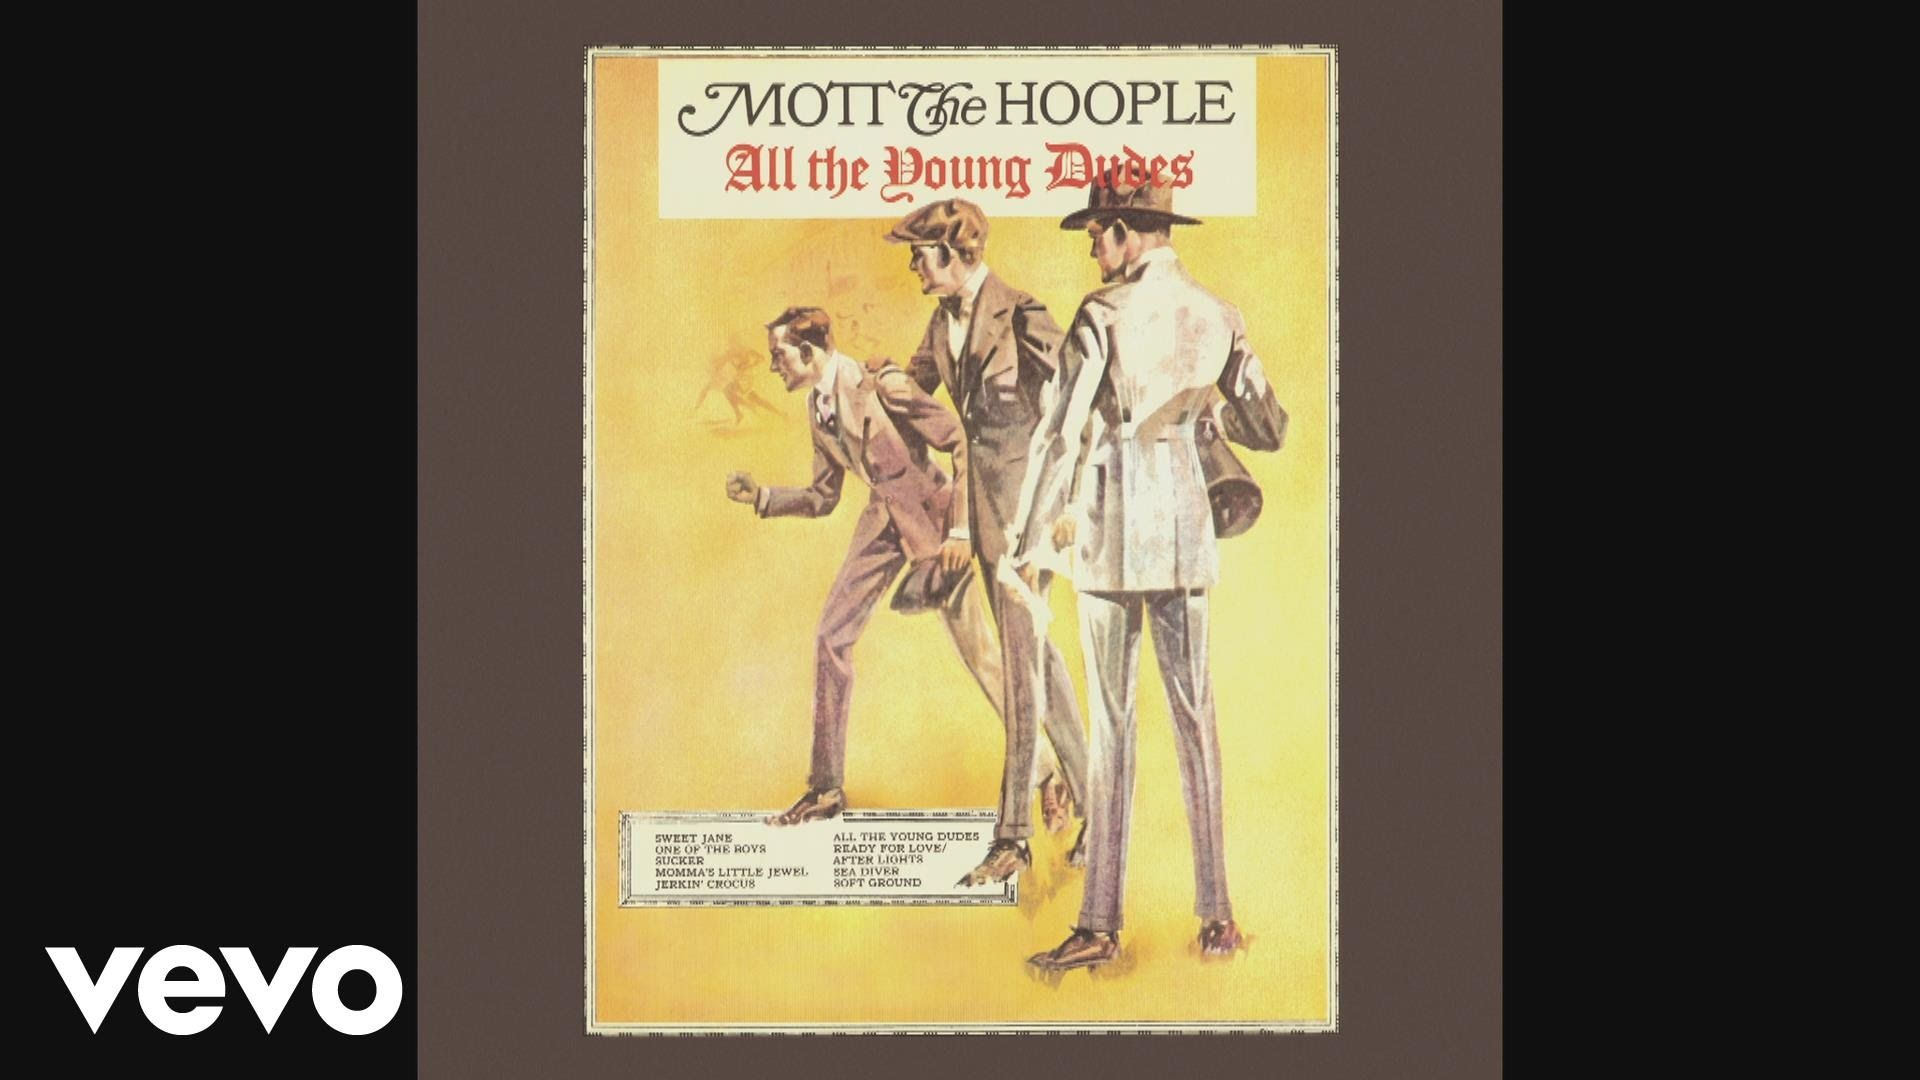 Mott The Hoople All The Young Dudes Audio Odedmusic Odedfriedgaon Audioded Mott The Hoople All The Young Dudes Hoople